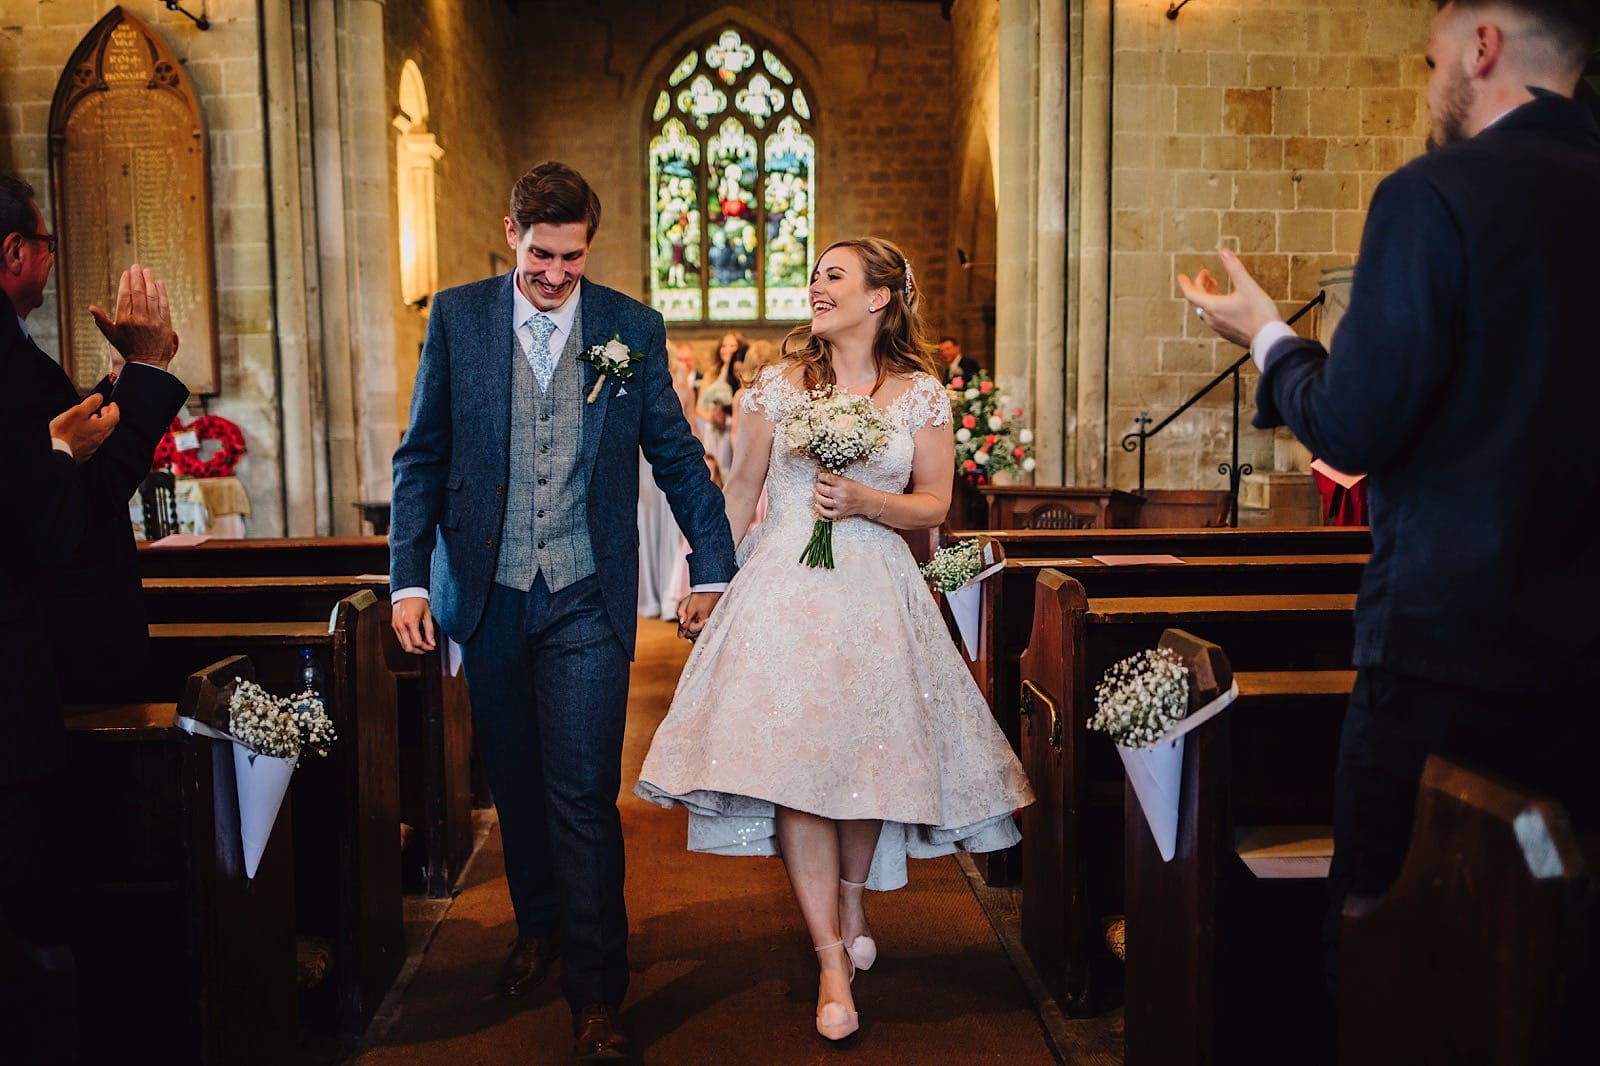 Rock village hall wedding photography 0039